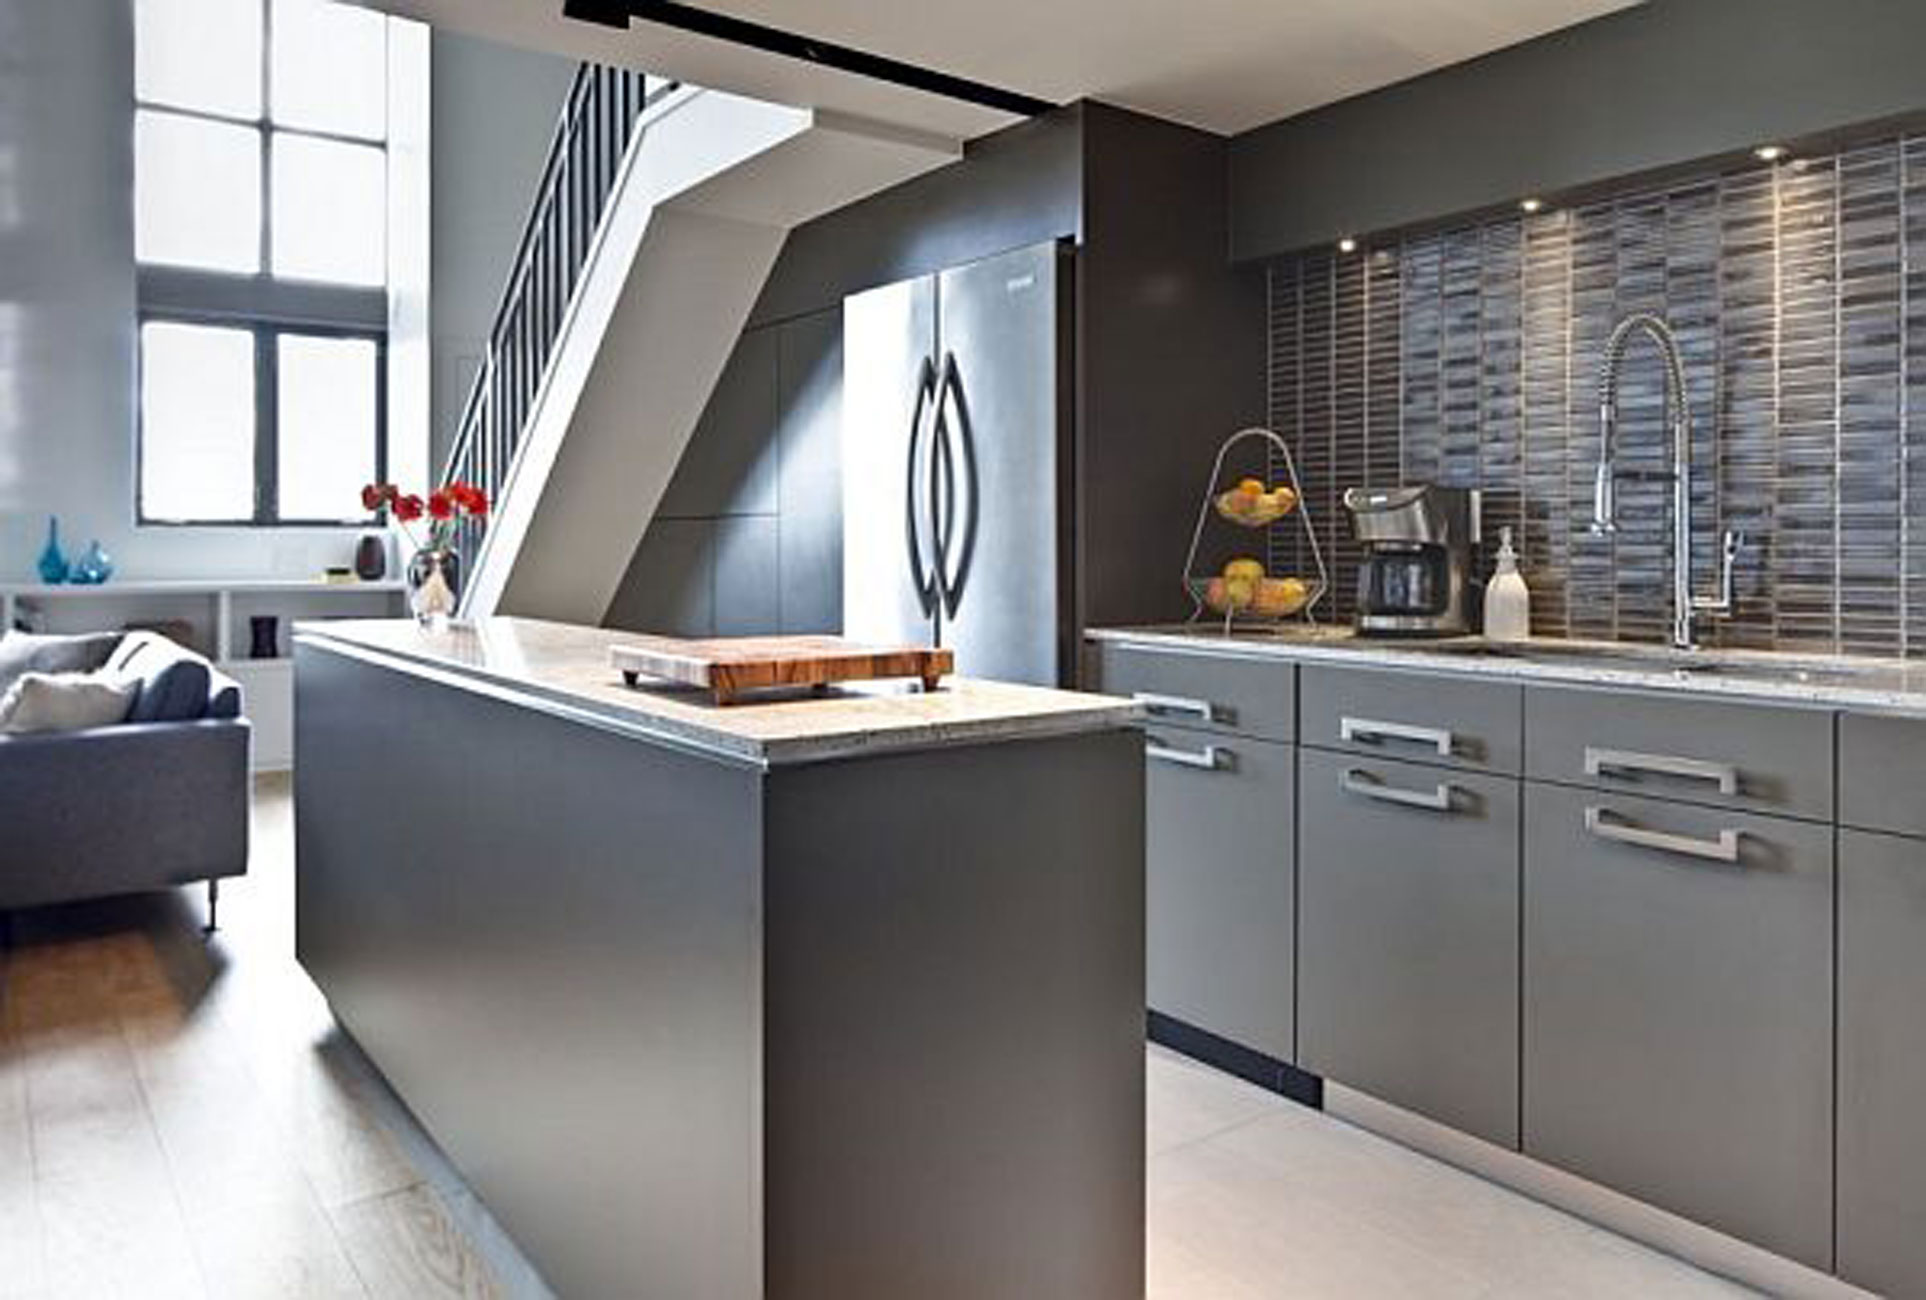 uncategorized-modern-grey-small-kitchen-in-apartment-design-with-stone-back-wall-also-calm-wall-color-for-best-kitchen-wall-decor-ideas-modern-kitchen-wall-decoration-with-wooden-furnitures-and-modern